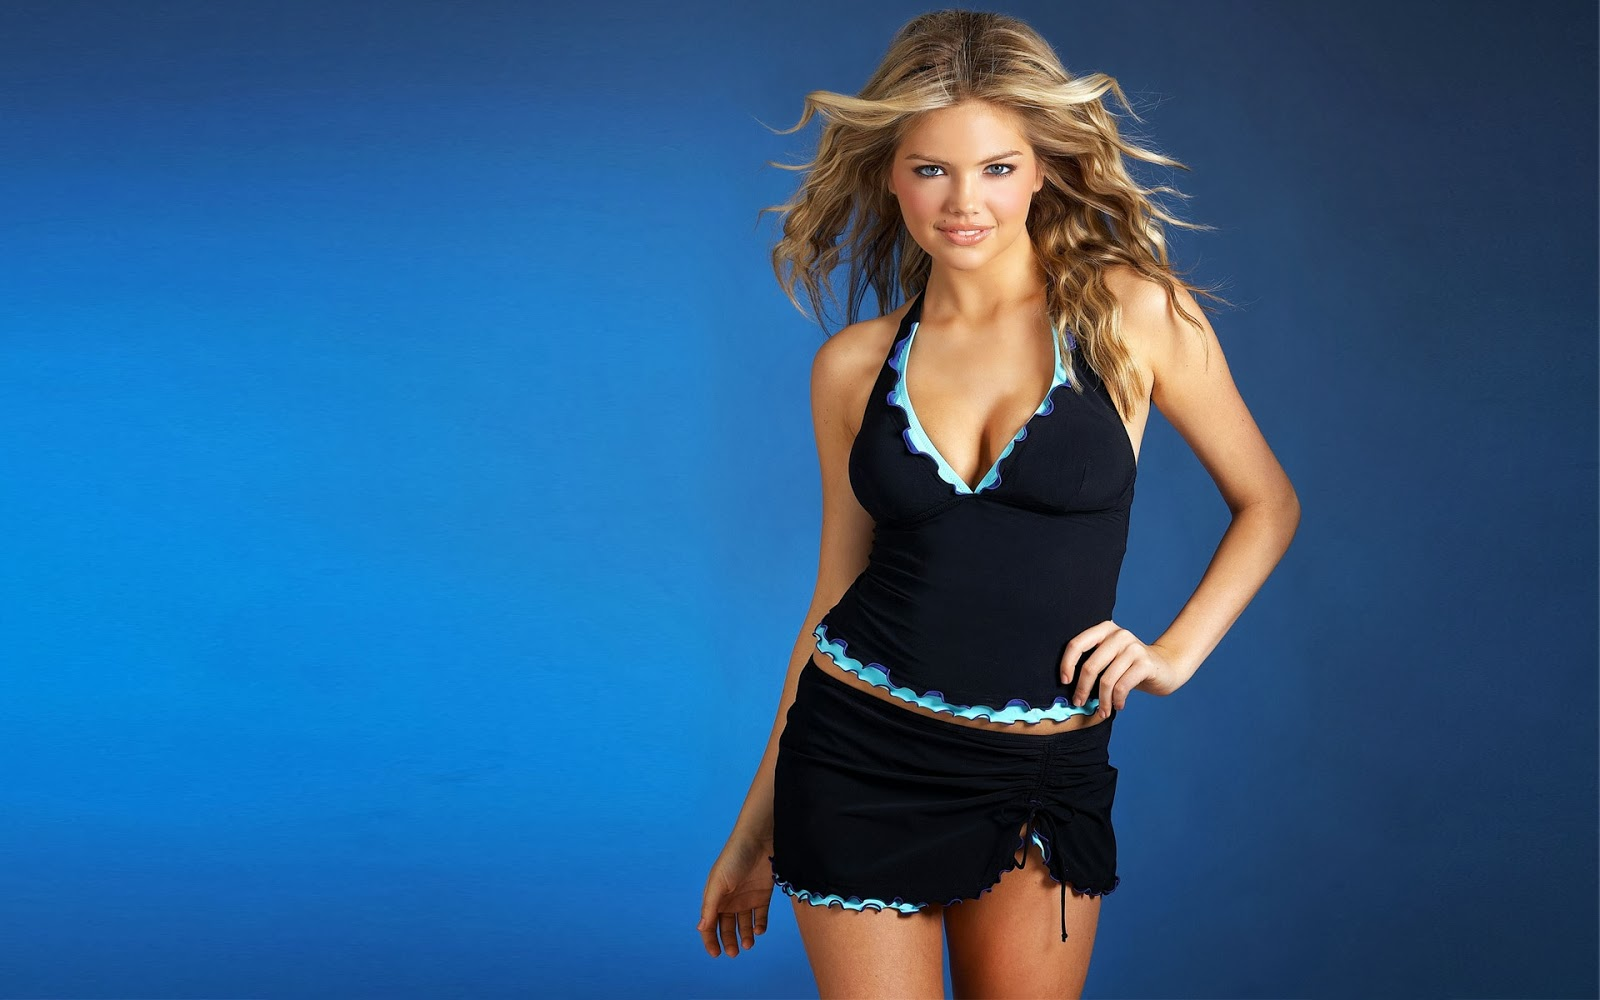 HD-Kate-Upton-HD-Kate-Upton-Female-Celebrity-Pictures-HD-wallpaper-wp400239